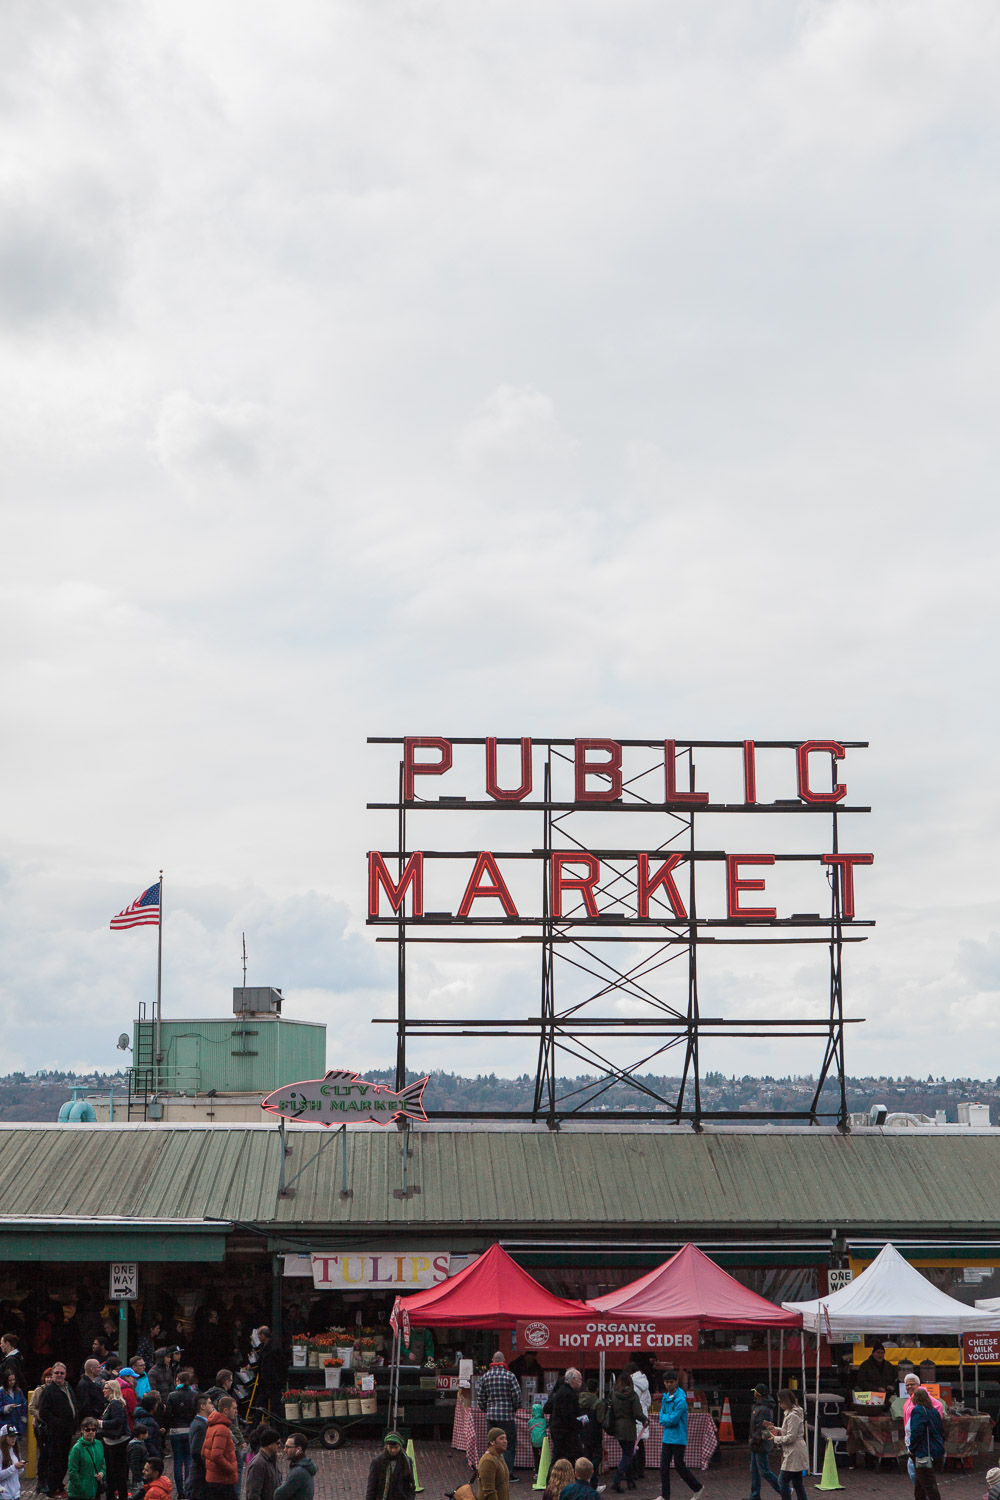 seattle-public-market-pikes-place